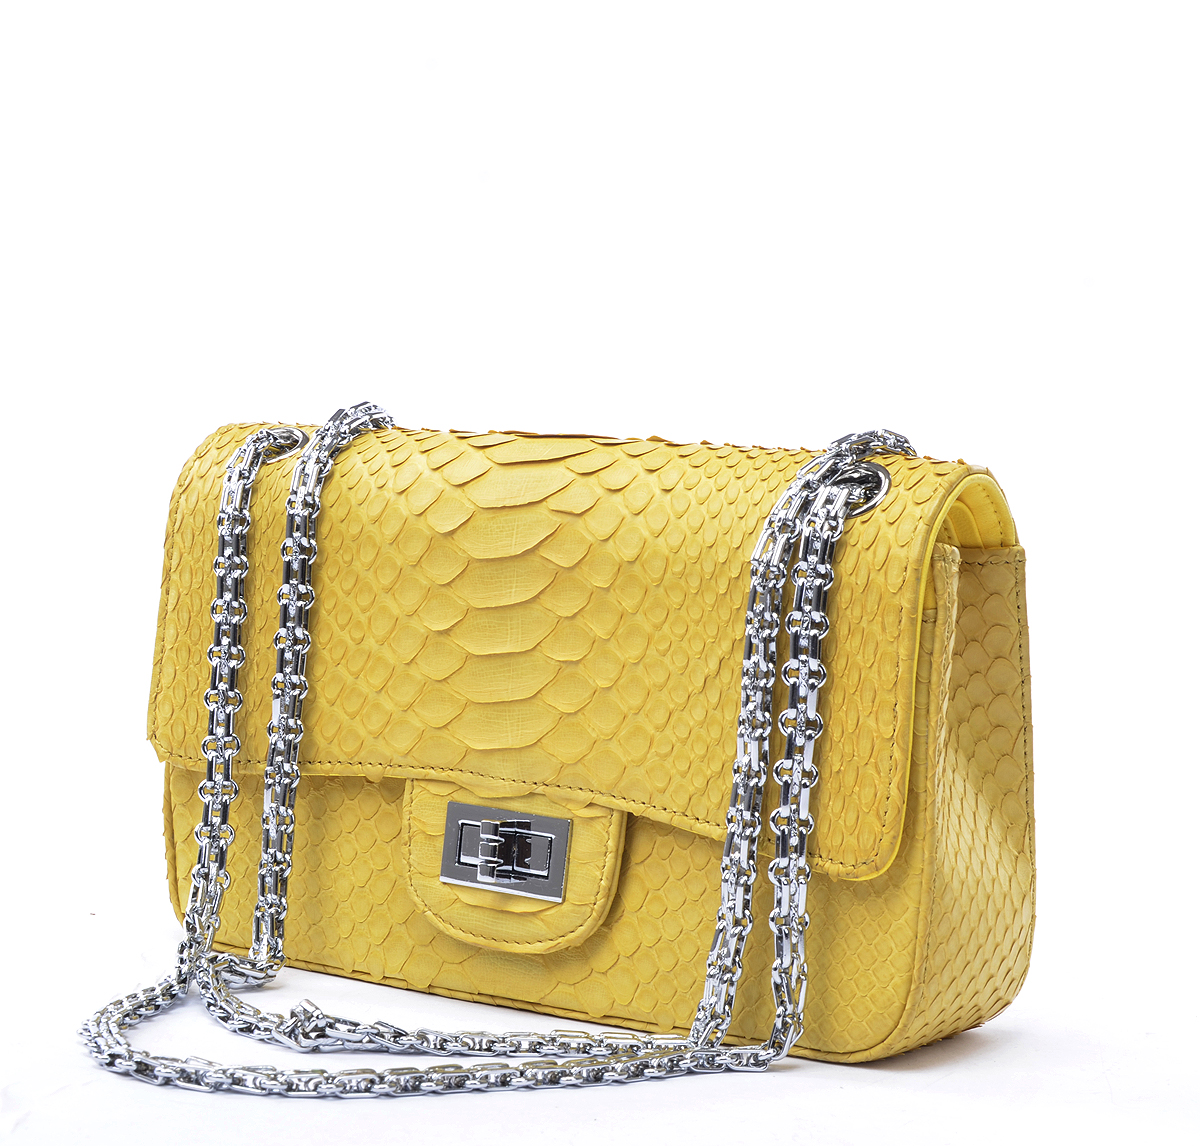 Real Python SKin Leather Channel Women Handbag